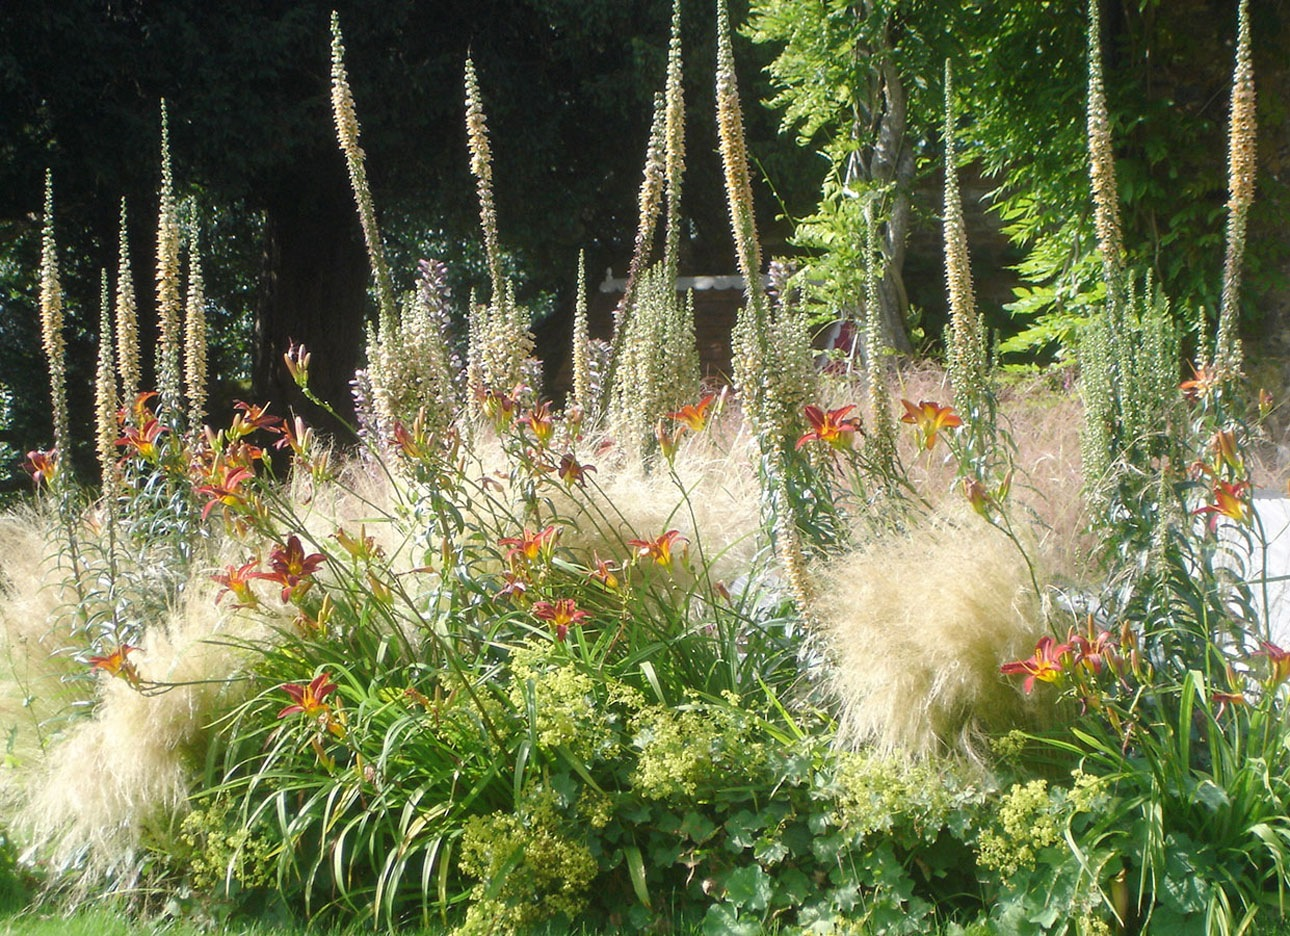 Dramatic planting design with towering spikes of verbascum, daylilies, alchemilla and grasses in new Sussex garden